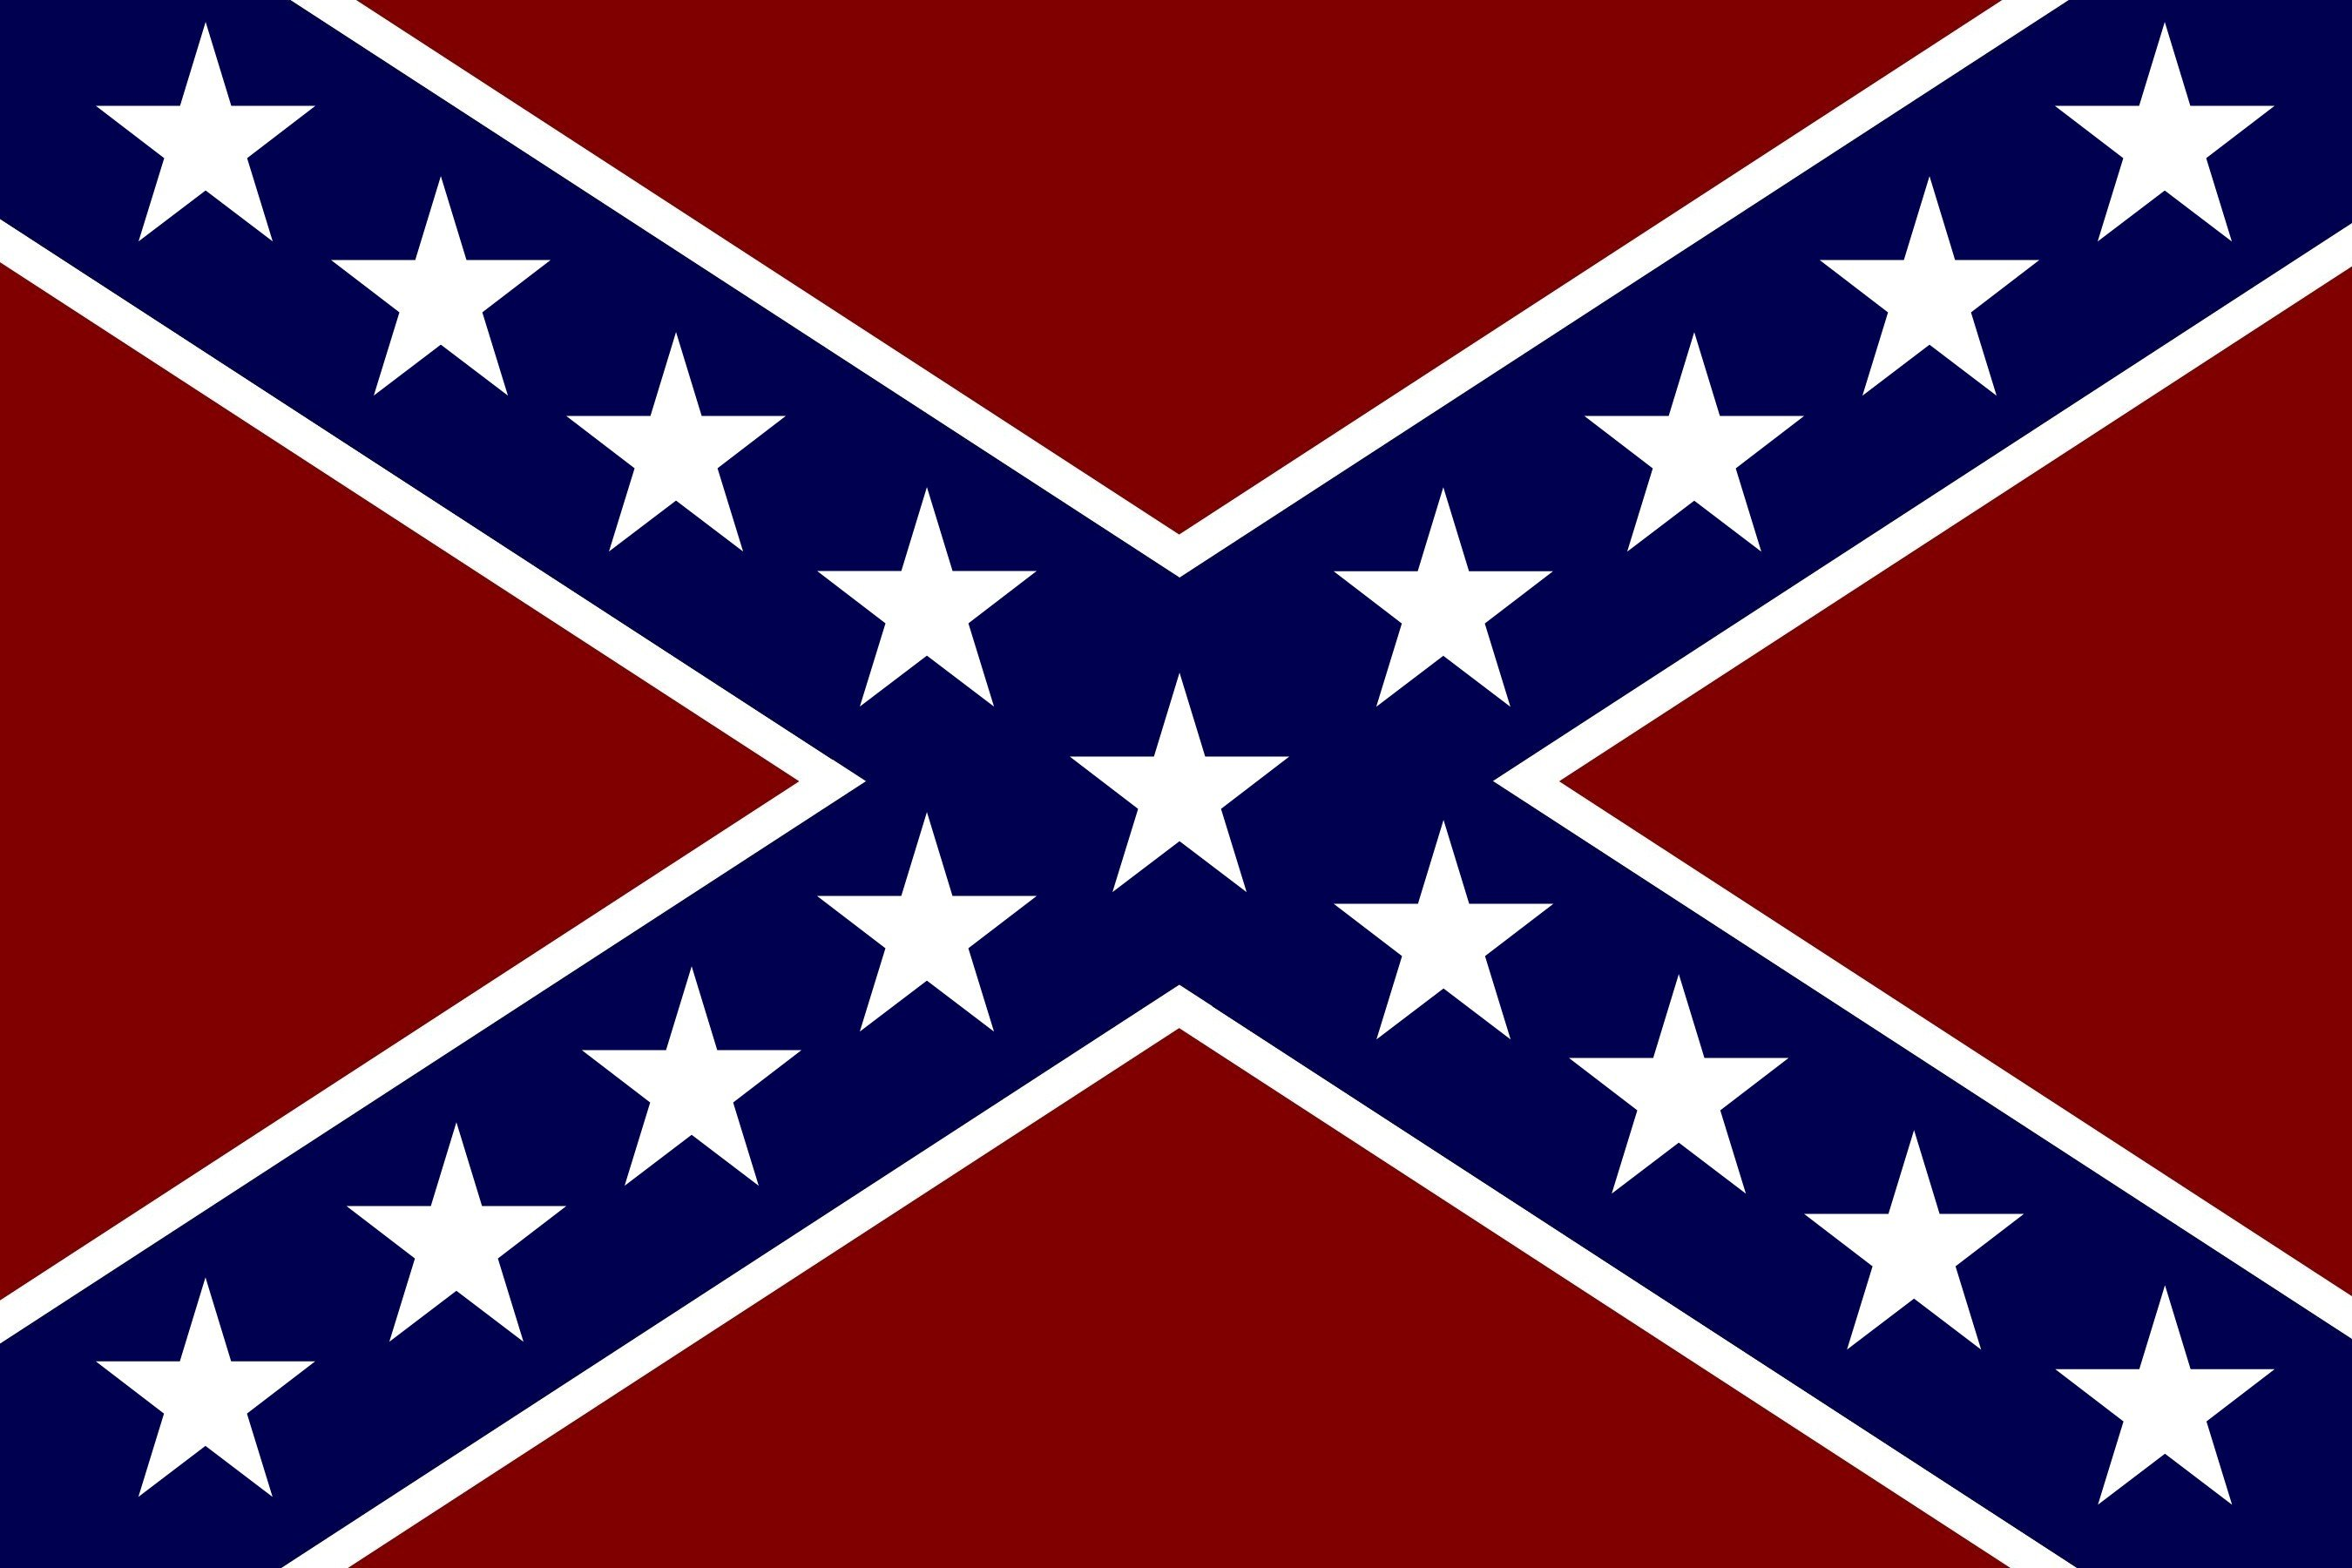 united states csa civil war rebel dixie military poster wallpaper 2700x1800